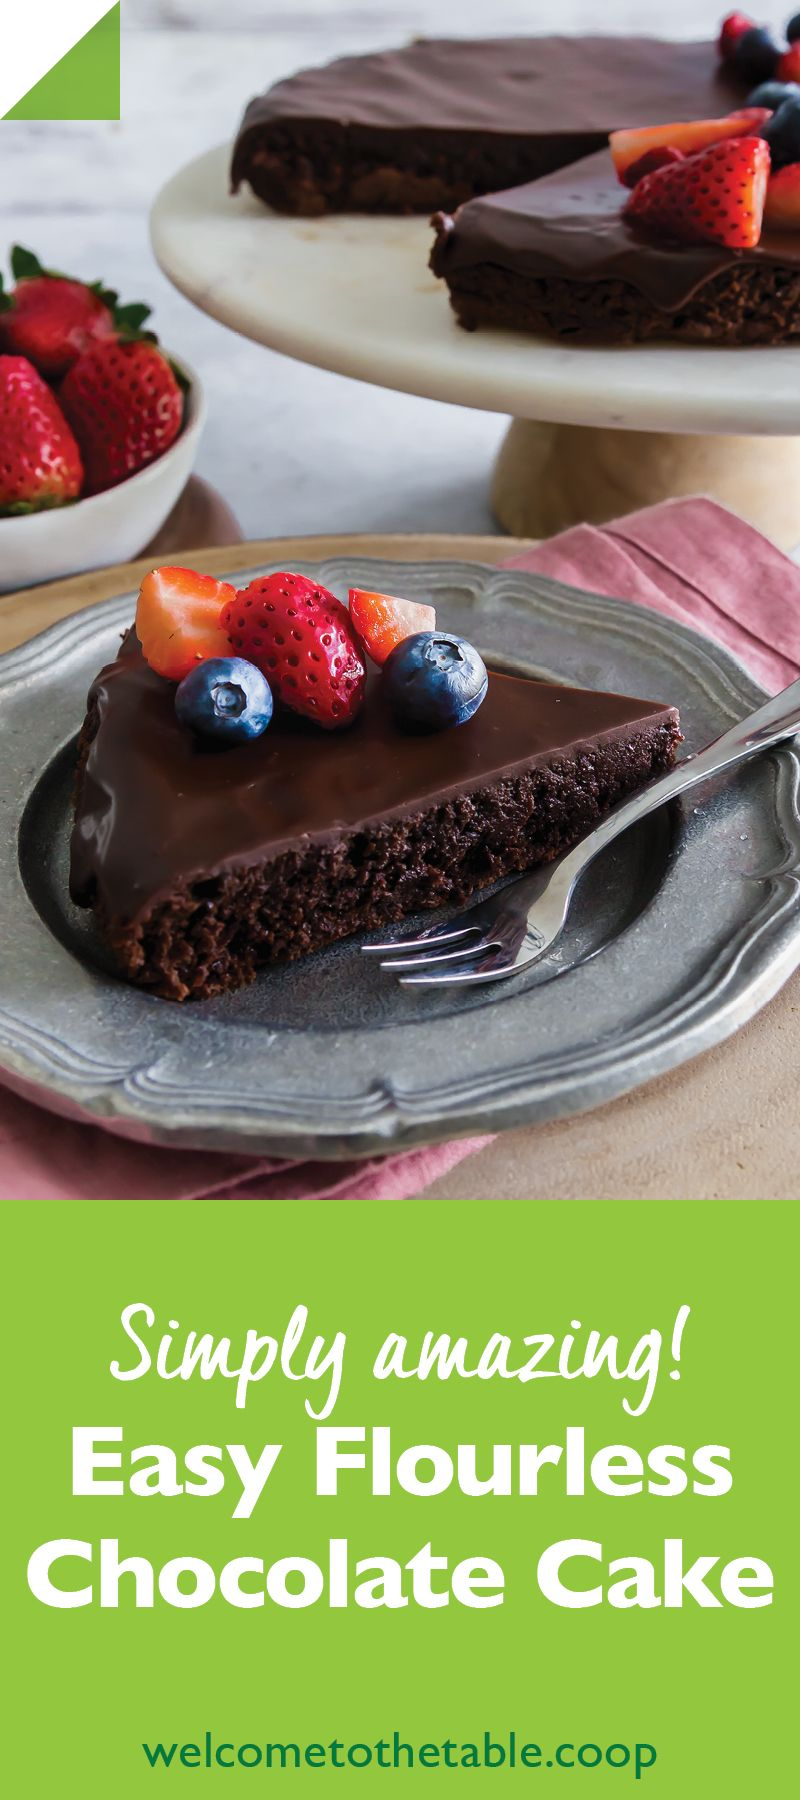 This delightfully rich glutenfree chocolate cake makes no